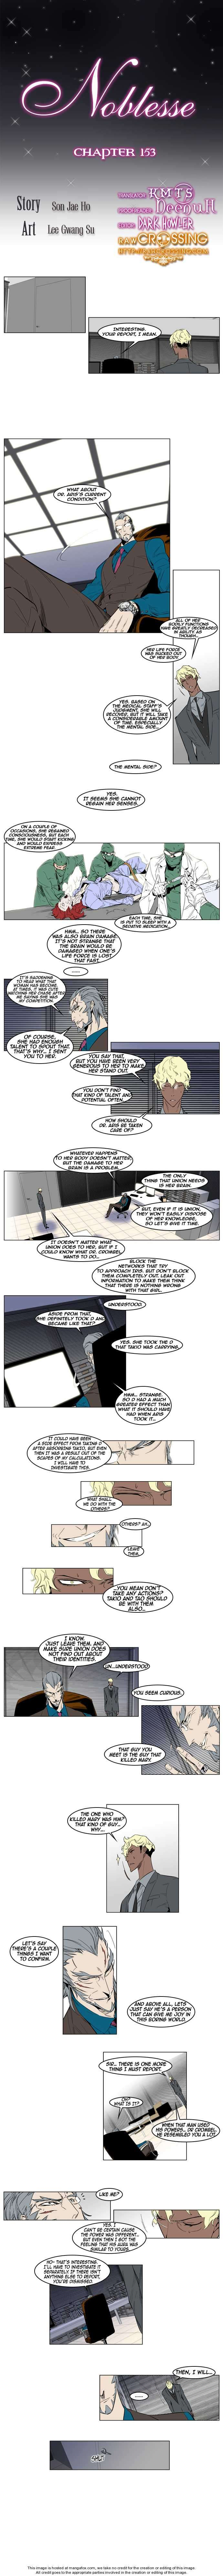 Noblesse 153 Page 1